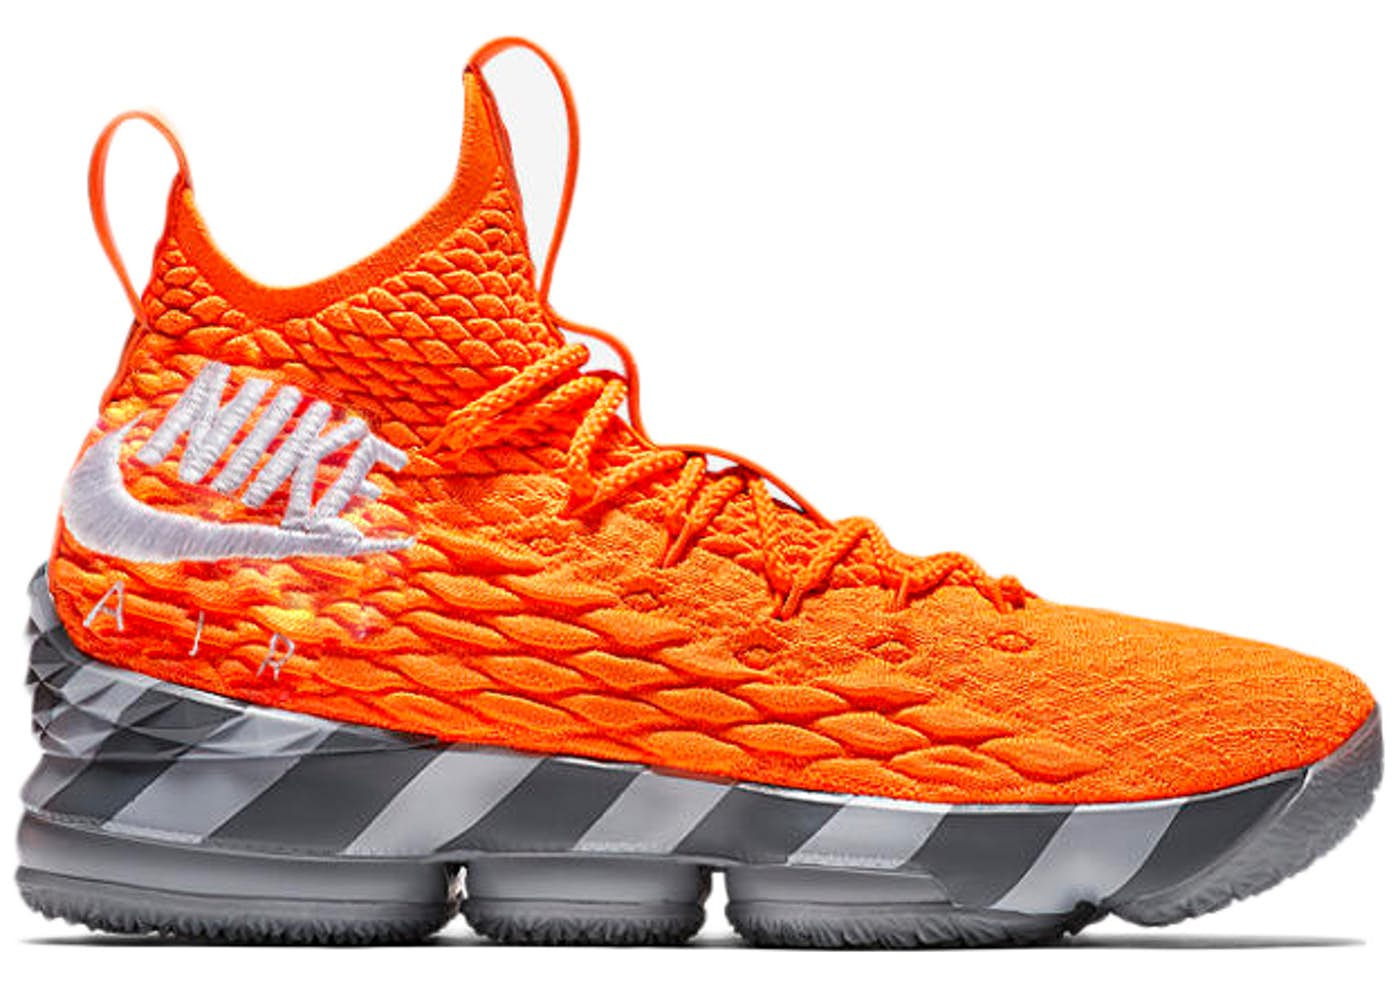 promo code 3d265 e4259 LeBron 15 Orange Box (House of Hoops Special Box and Accessories)